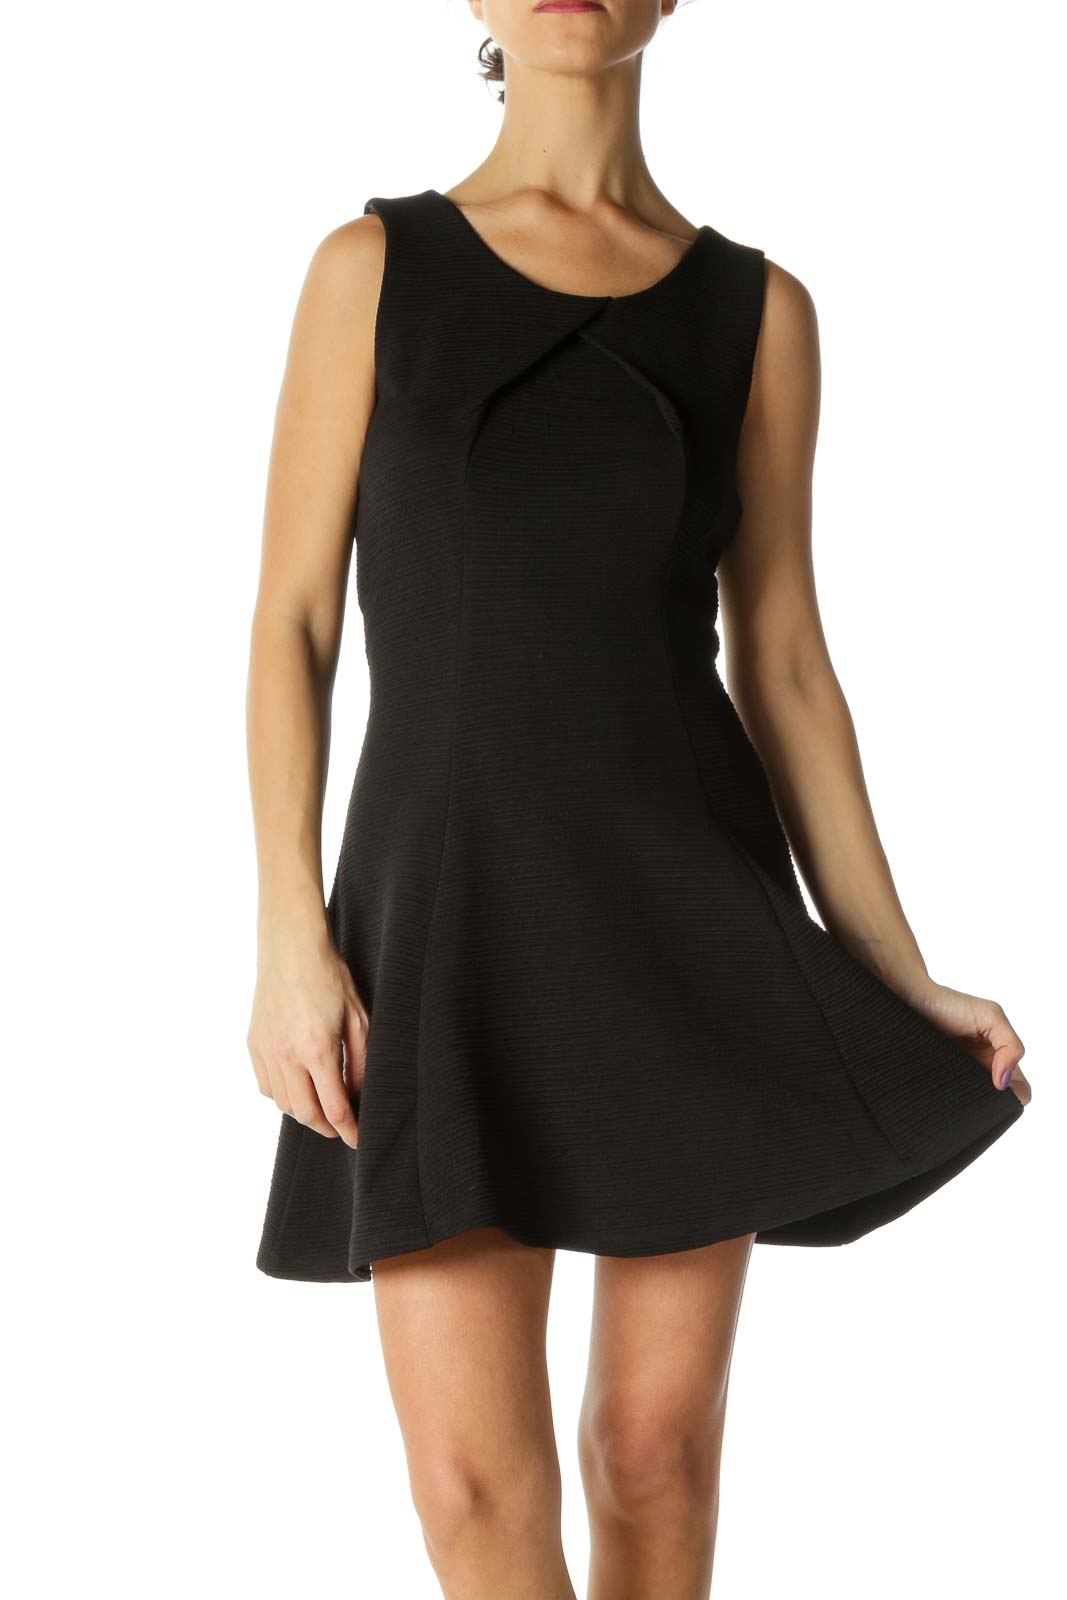 Black Solid Casual A-Line Dress